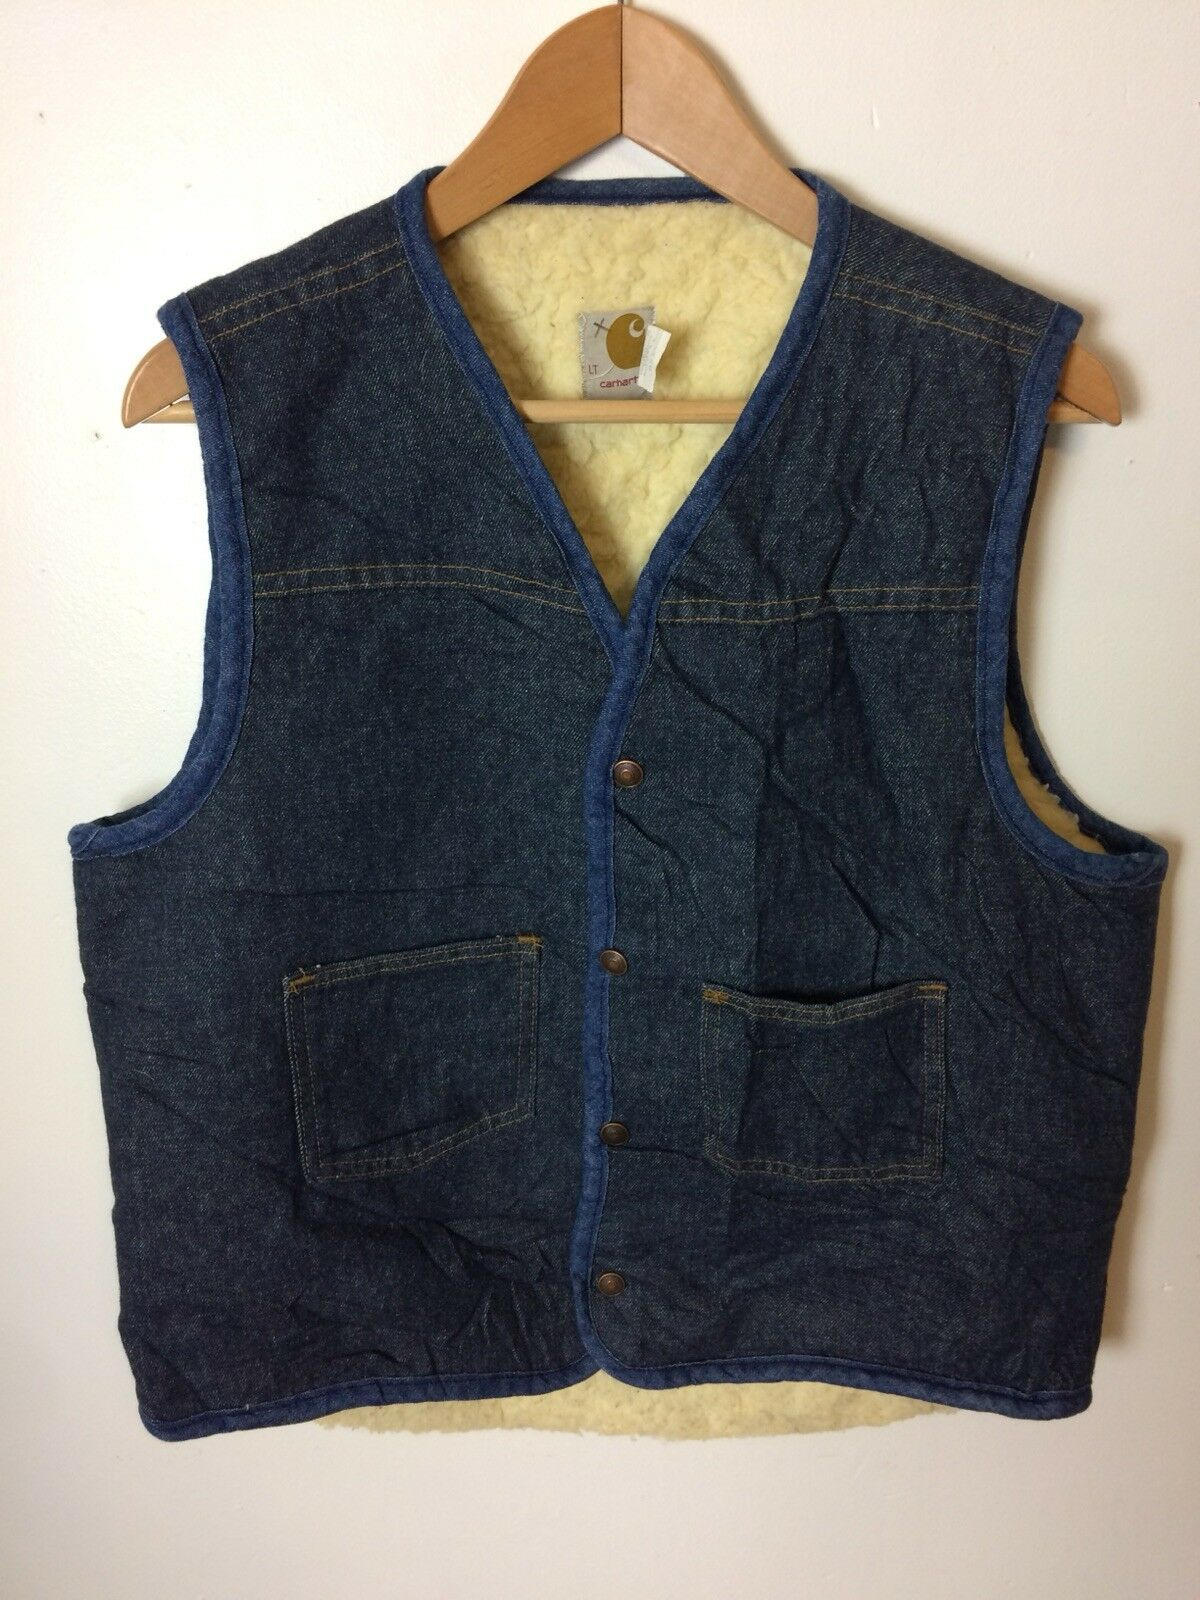 Vintage CARHARTT Sherpa Lined Vest Size Large Tall Denim bluee Made In USA